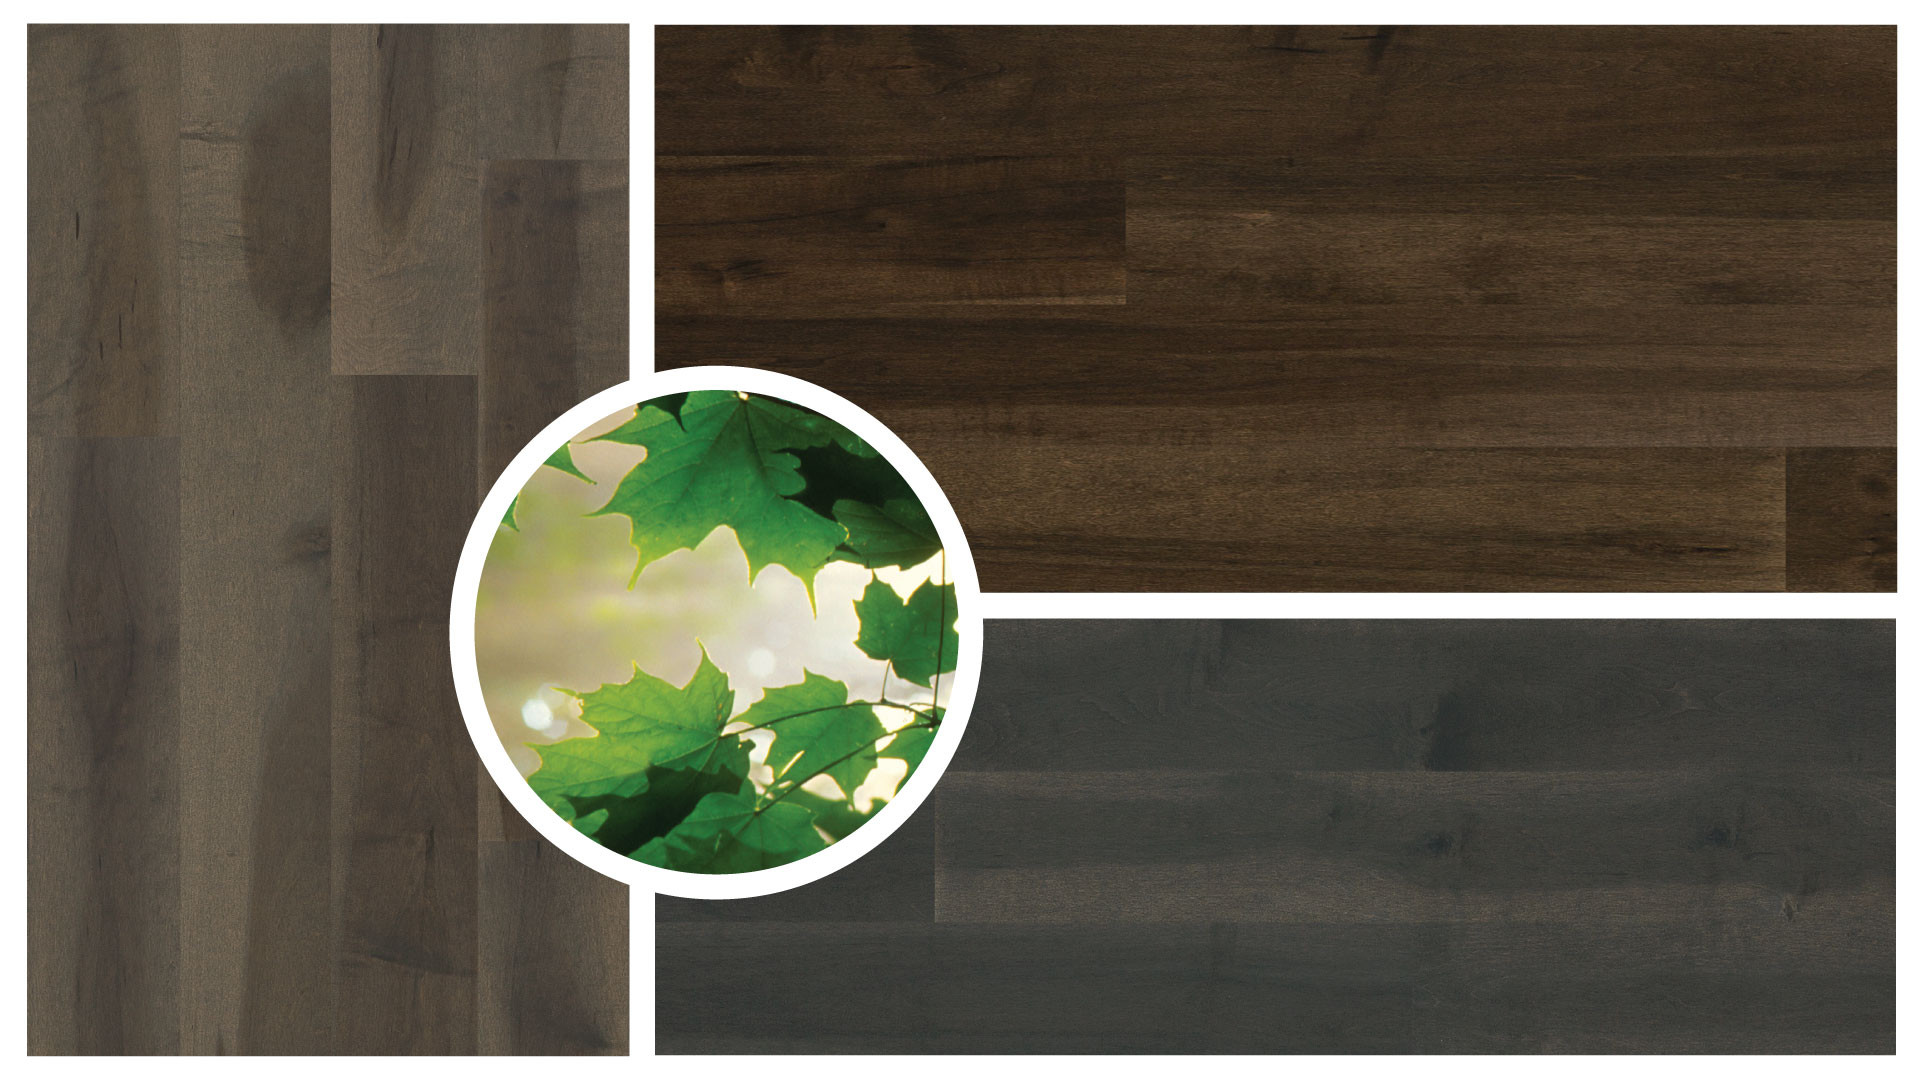 Most Popular Hardwood Floor Colors 2015 Of 4 Latest Hardwood Flooring Trends Lauzon Flooring Inside Elegant organik Series Hardwood Flooring Boasts Extensive tonal Variation for A Chameleon Effect Becoming Lighter or Darker Depending On the Lighting and